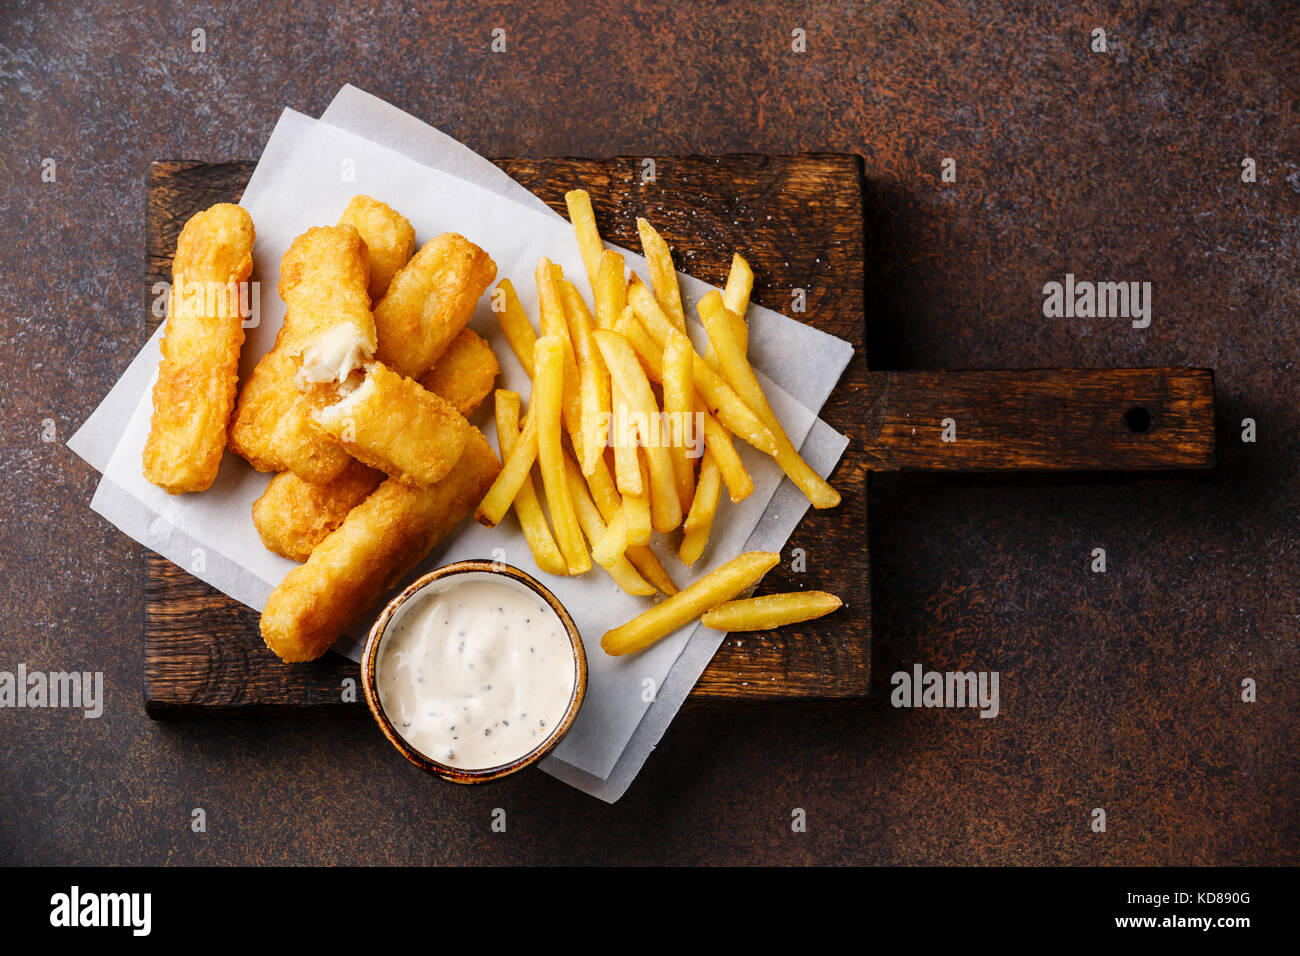 Fish fingers and Chips british fast food with tartar sauce on dark background Stock Photo